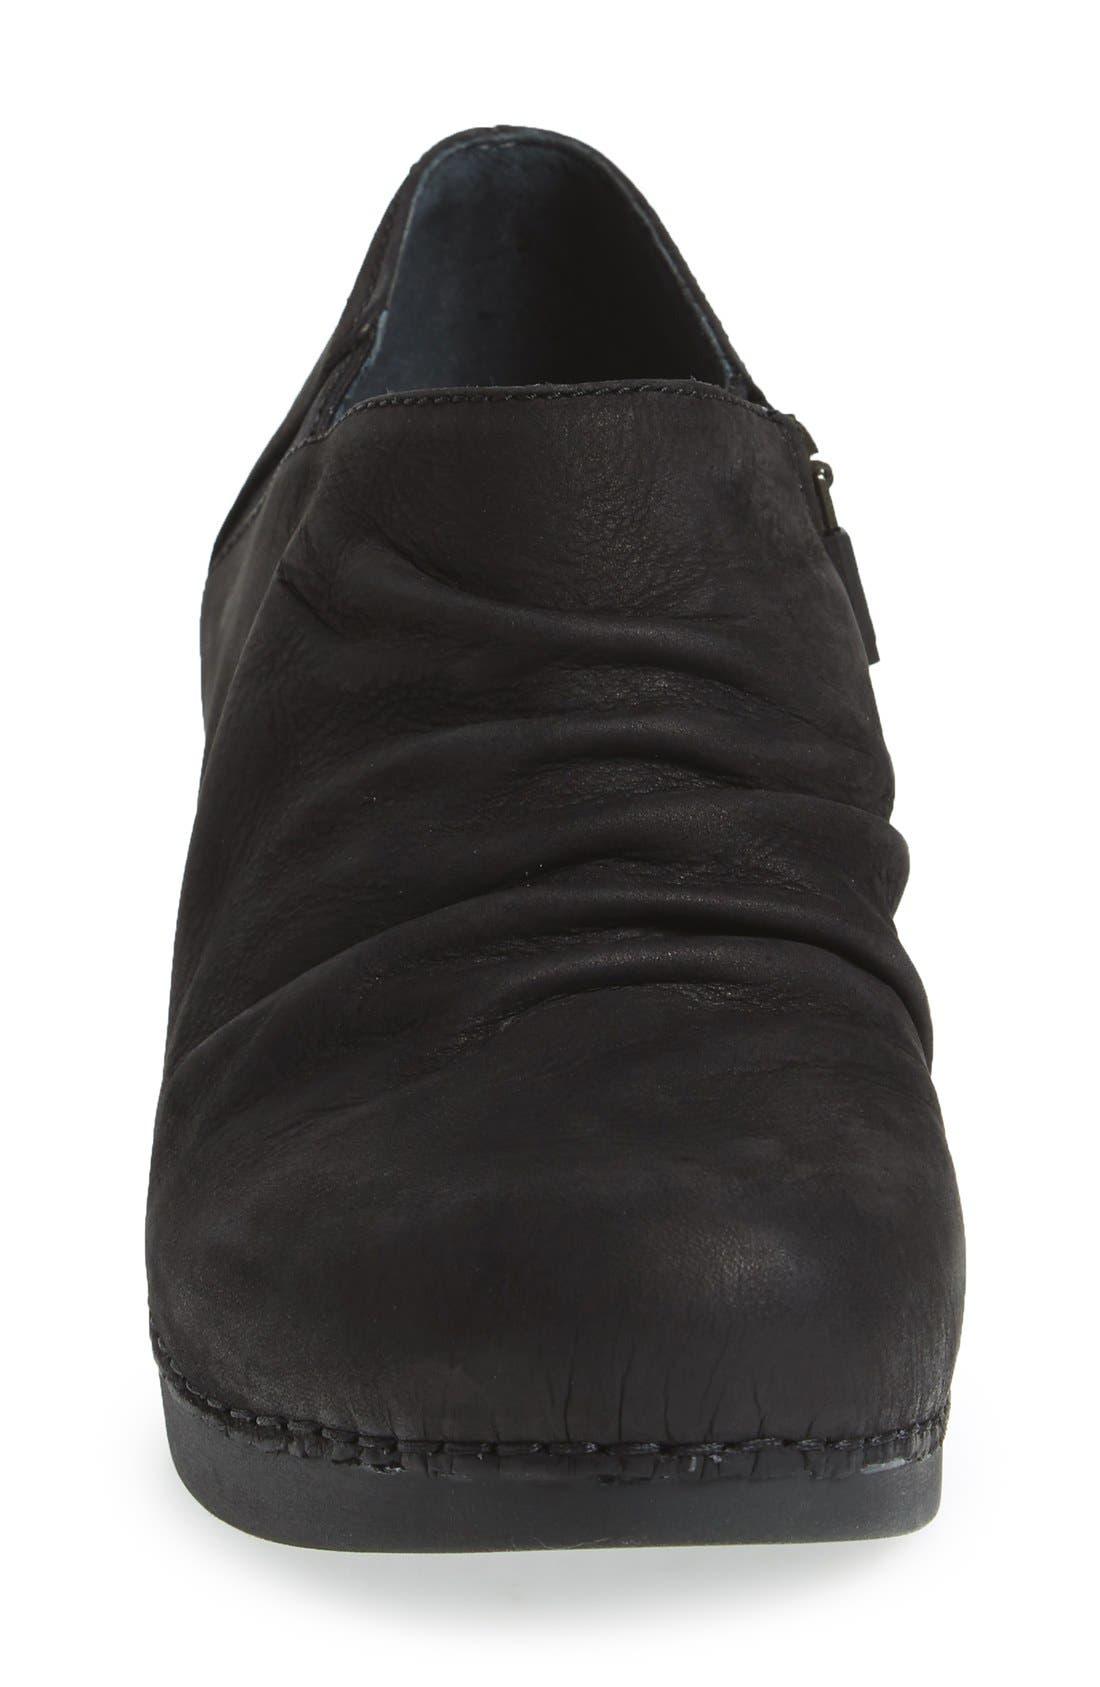 'Sheena' Slouchy Wedge Bootie,                             Alternate thumbnail 3, color,                             Black Nubuck Leather